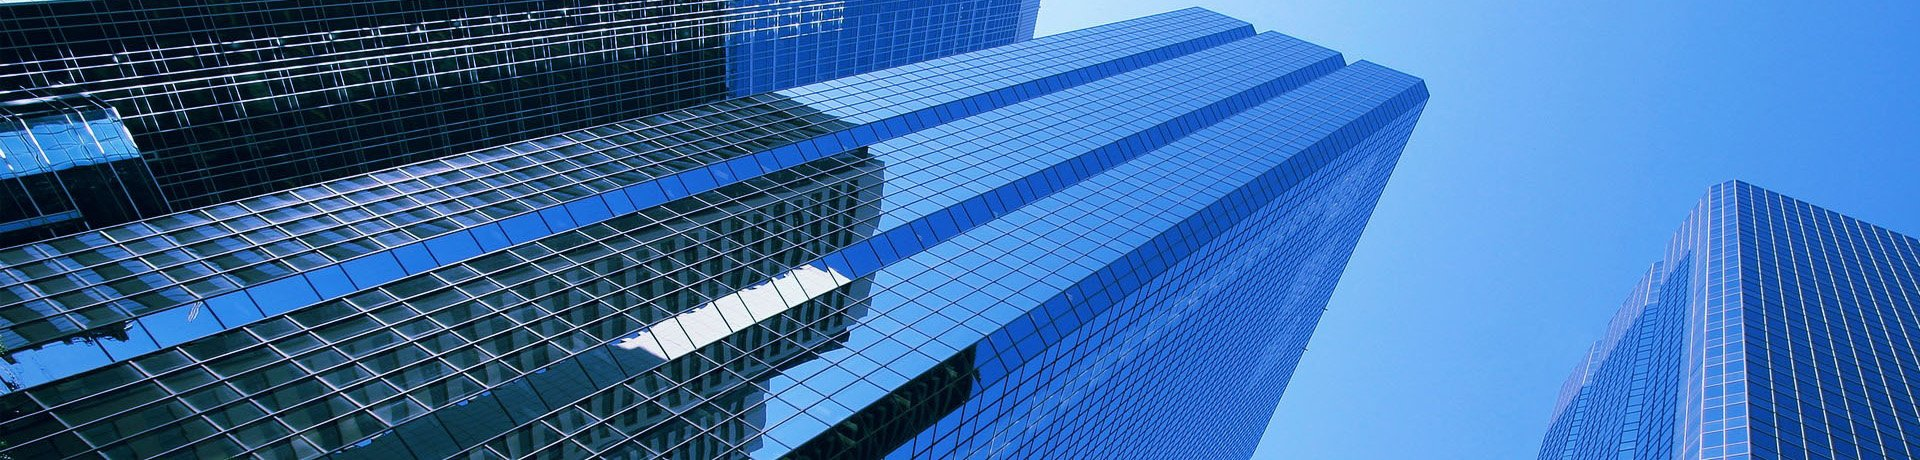 windows tint services for skyscraper building